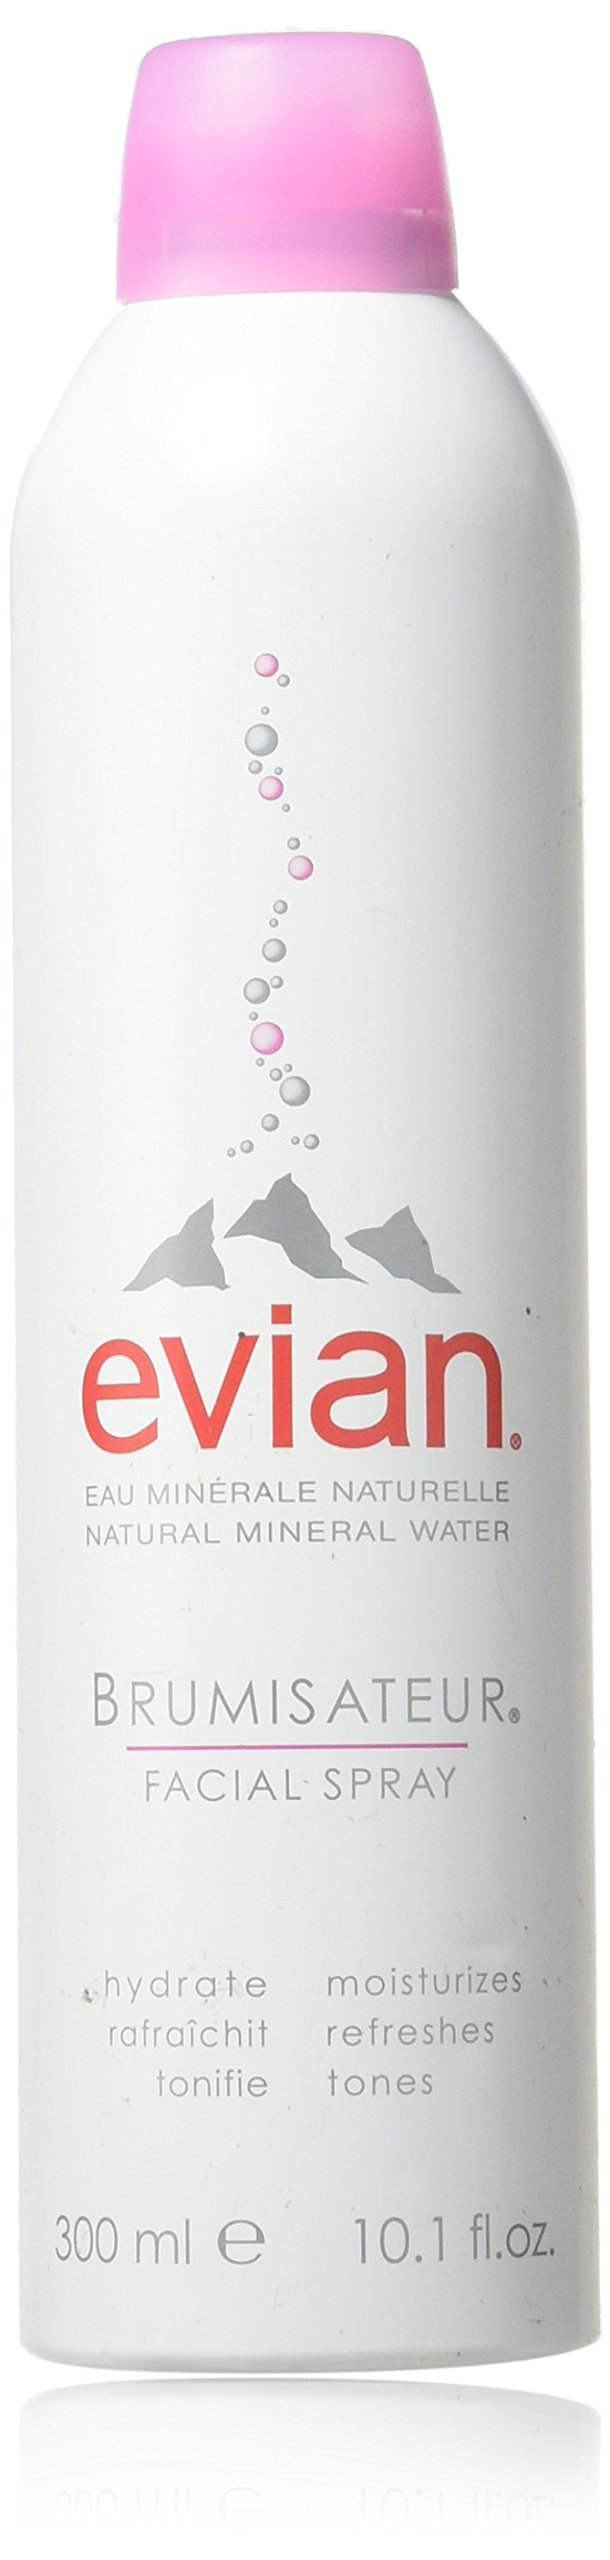 Buy Evian Natural Mineral Water Spray 300ml Moisturizing Facial 300 Ml 101 Oz